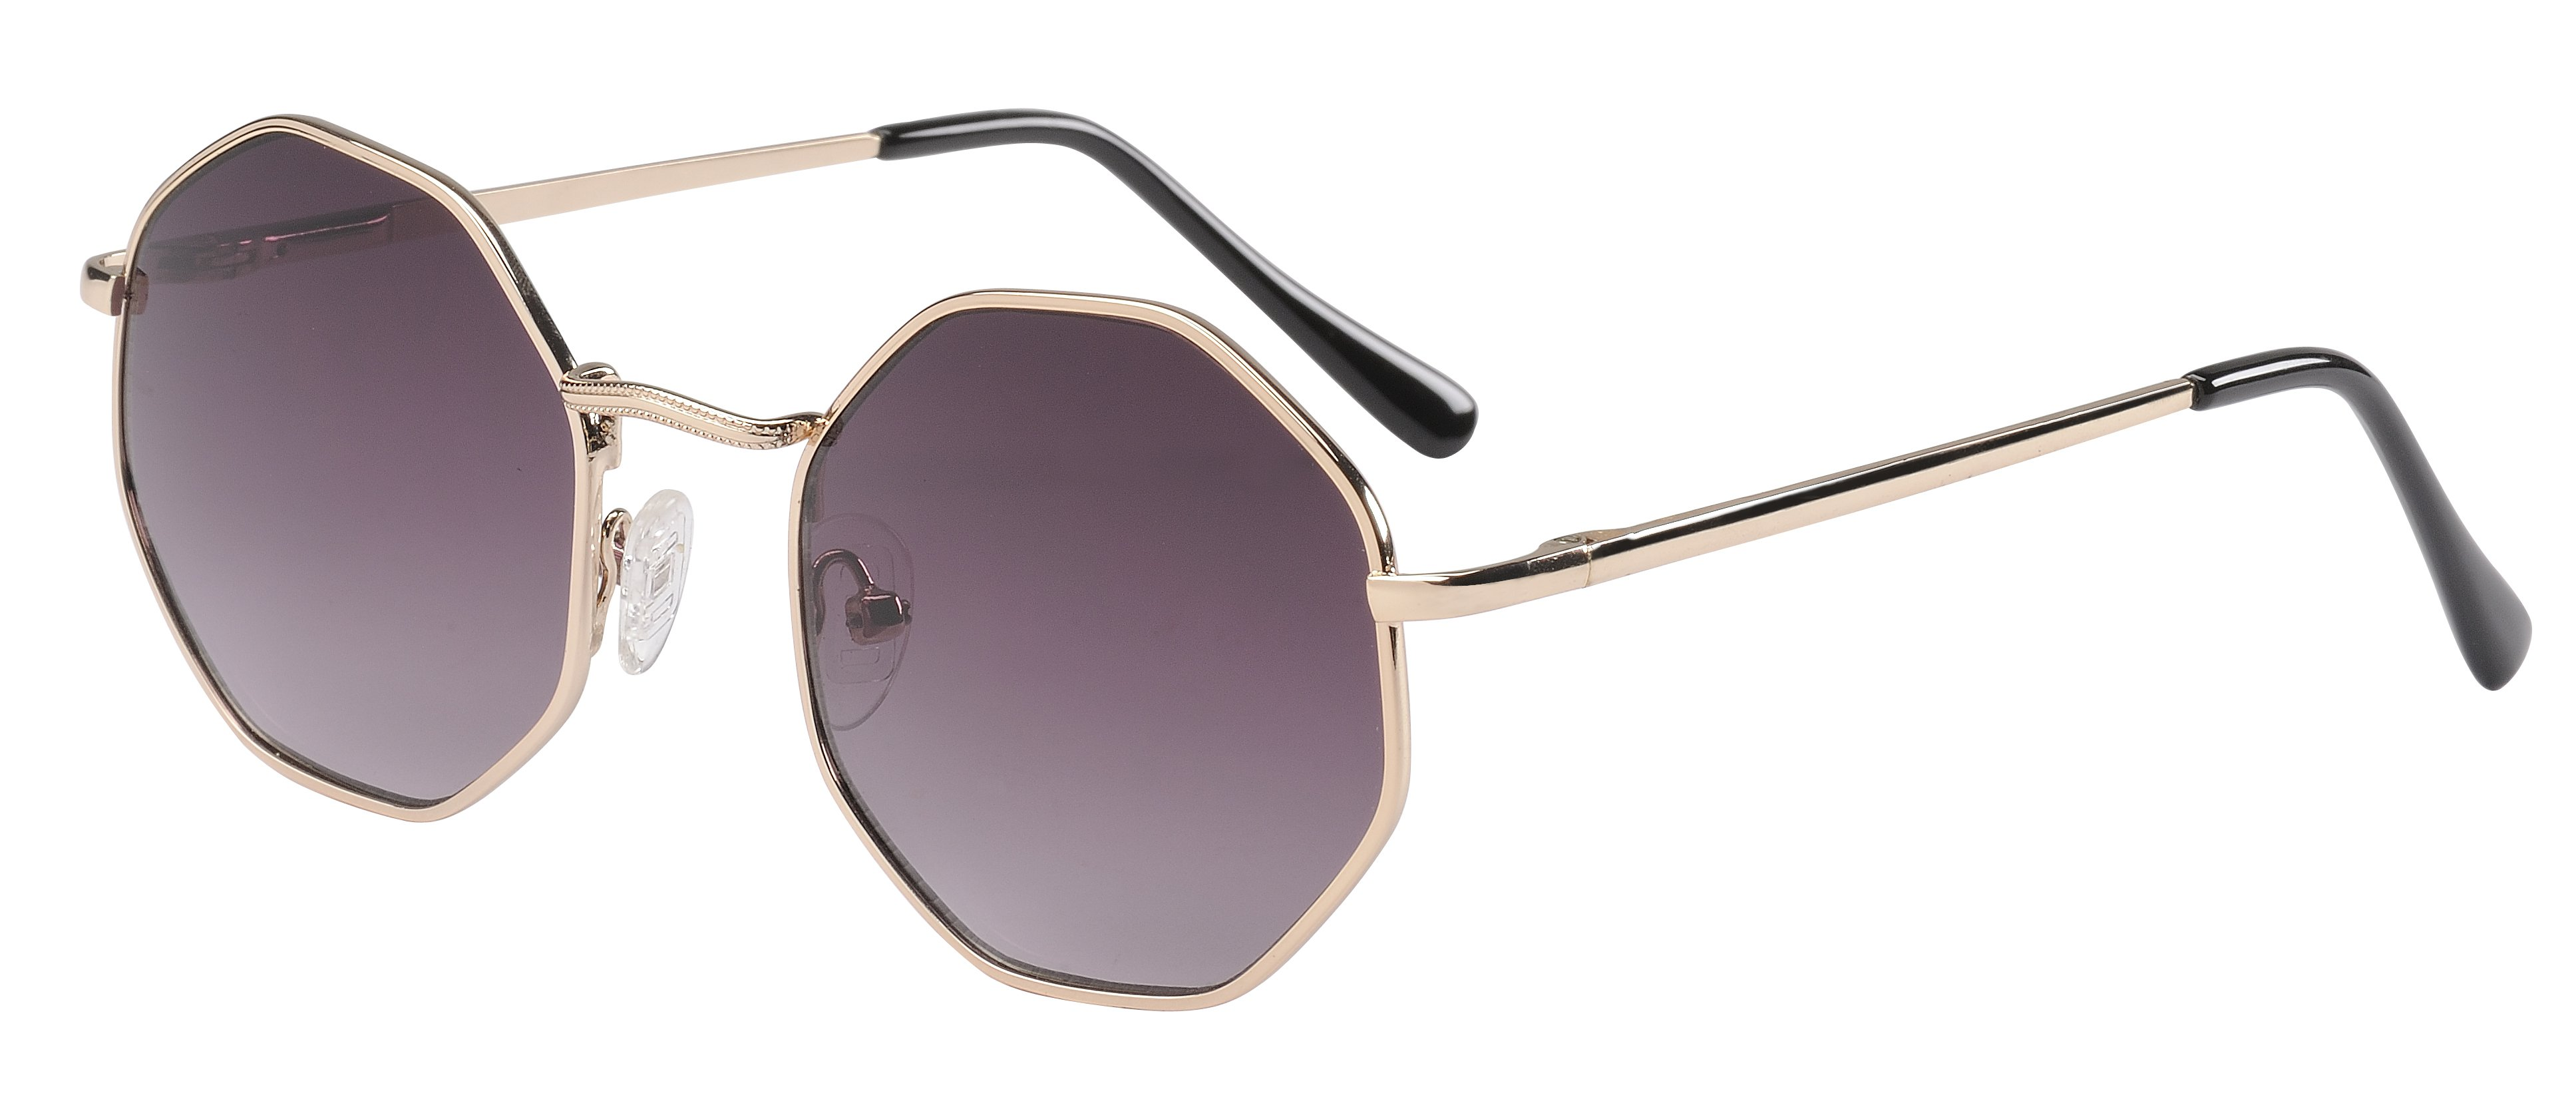 Frankie Ray Sunglasses 3yr+ Luna Metal Gold